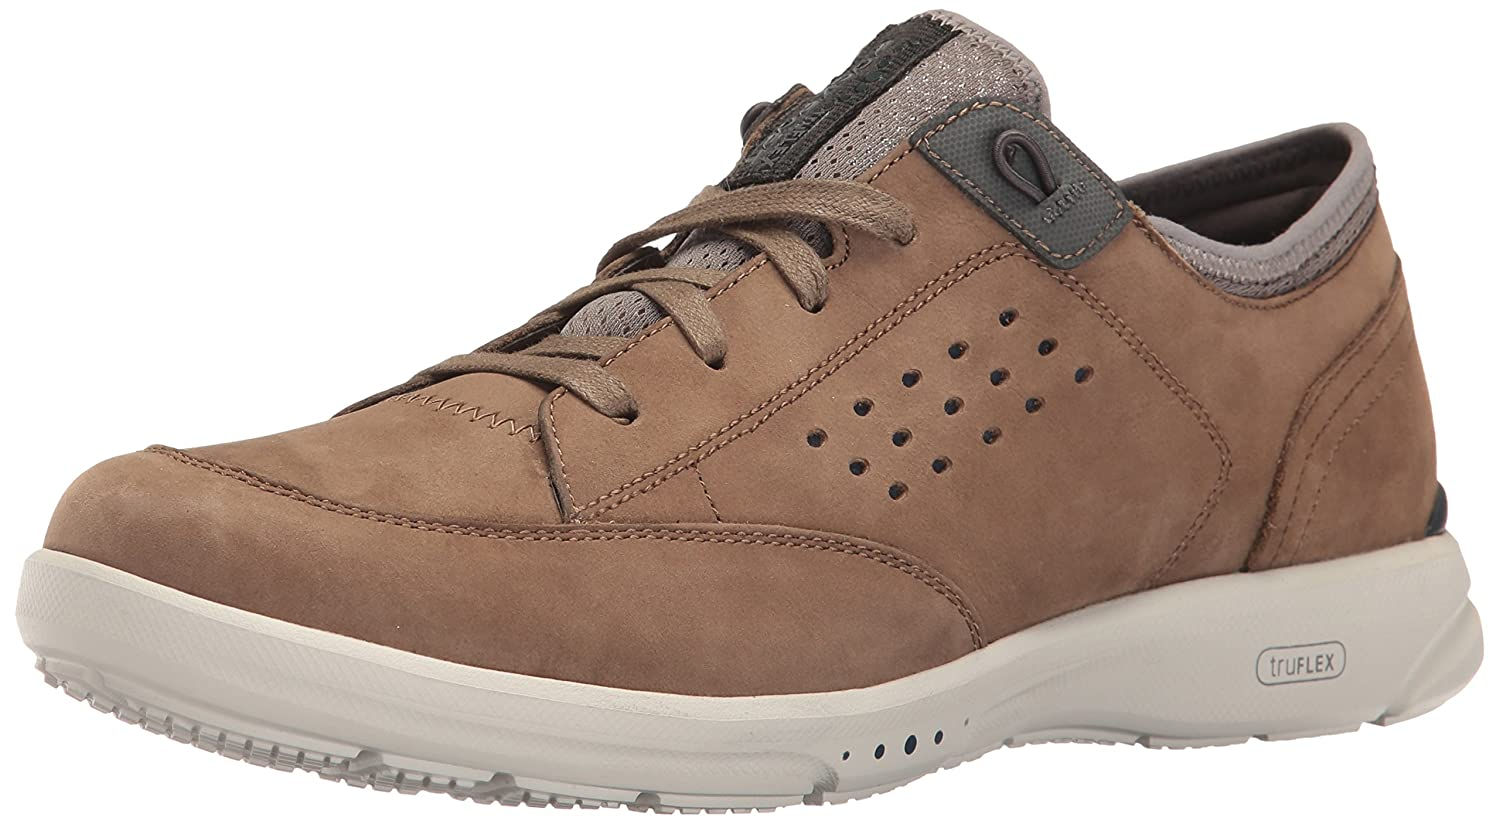 Rockport Men's Truflex Lace to Toe Shoe 9.5 D(M) US|Taupe